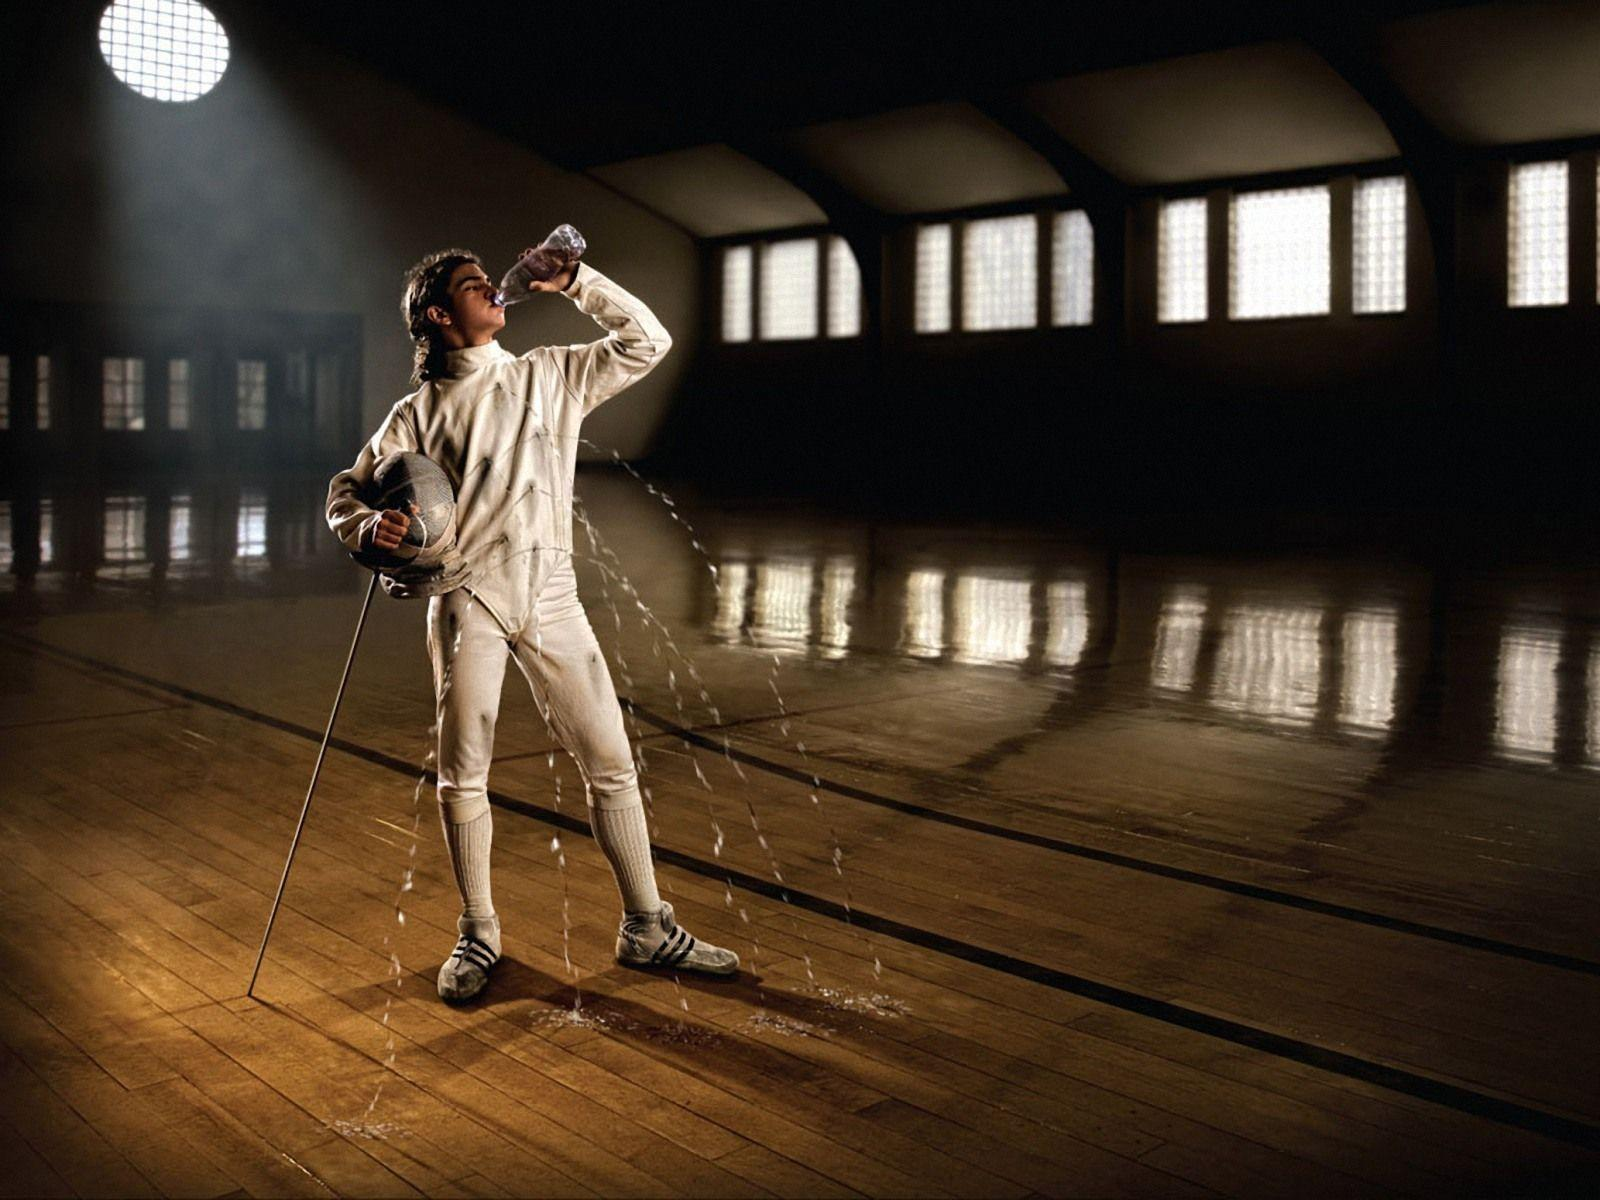 HD Wallpapers Fencing - Fencing Wiscon sin holes | Fencing ...